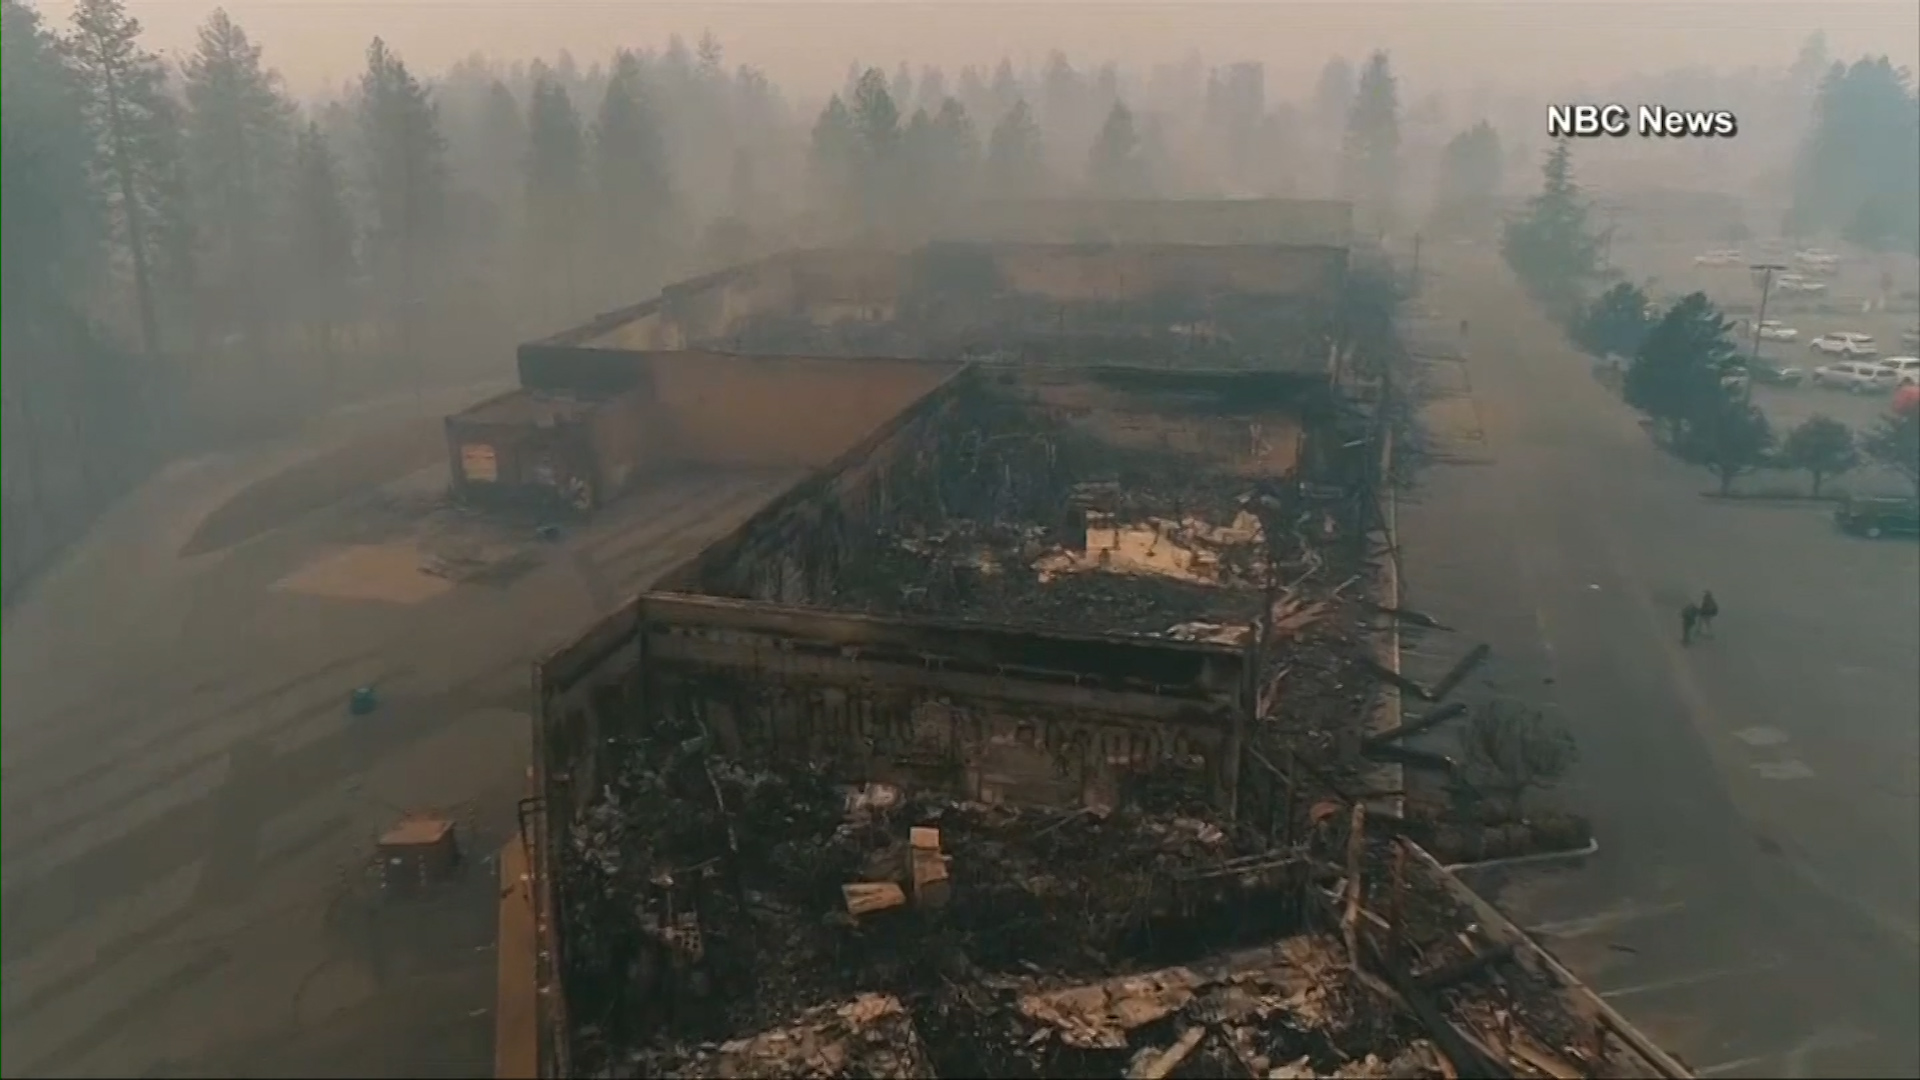 California power company caused state's deadliest blaze, investigation finds